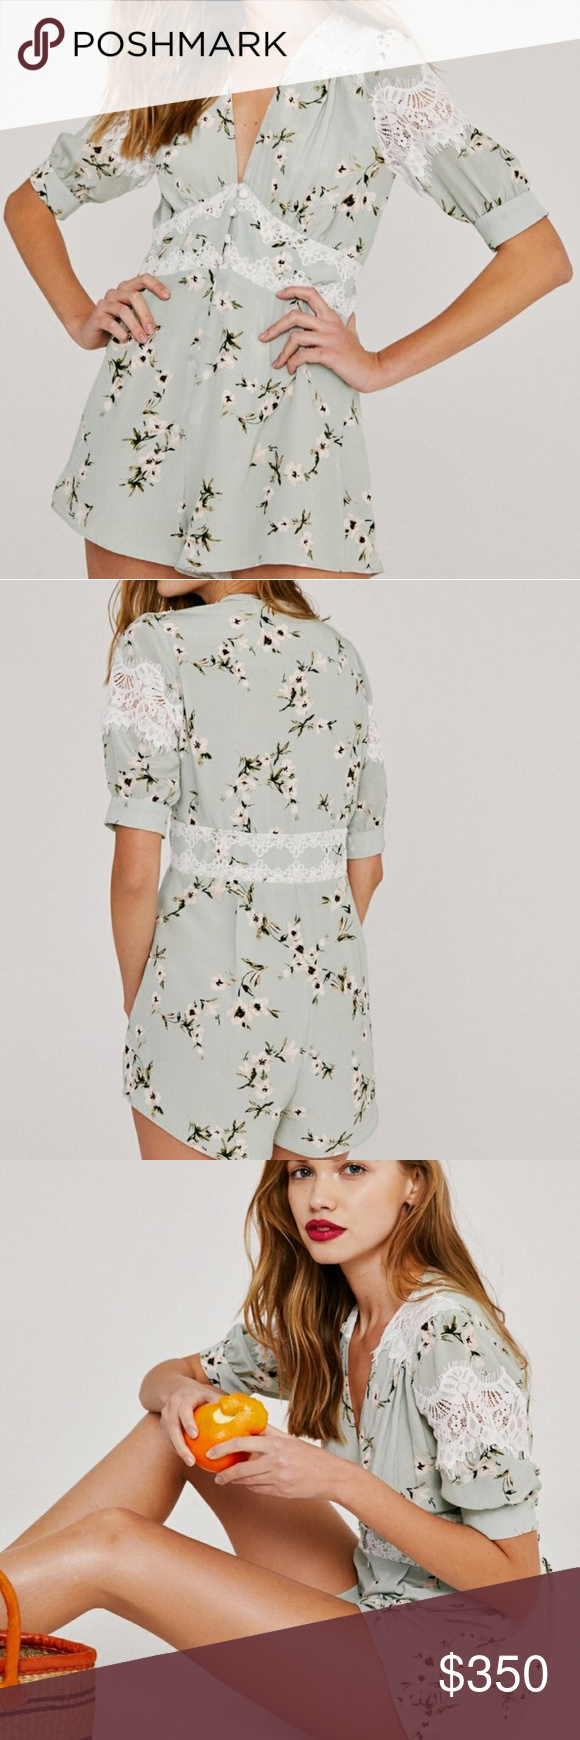 b2739178db9 Stone cold fox rose romper Mint with floral pattern and lace romper by scf.  (In association with fp) New